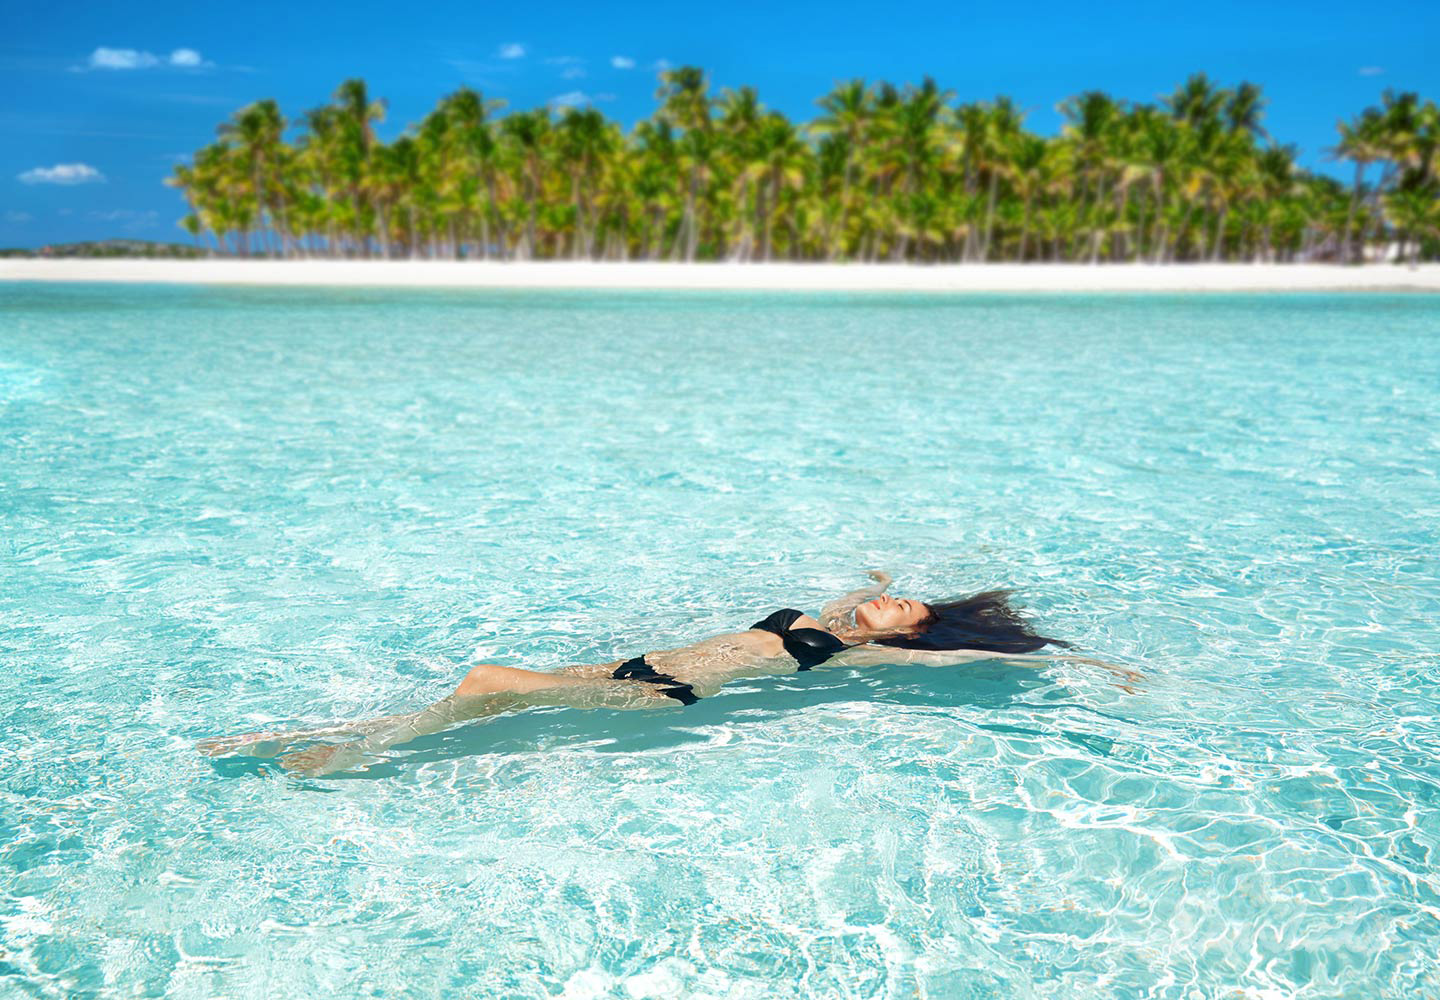 Travel Agency All-Inclusive Resort Sandals Emerald Bay 100